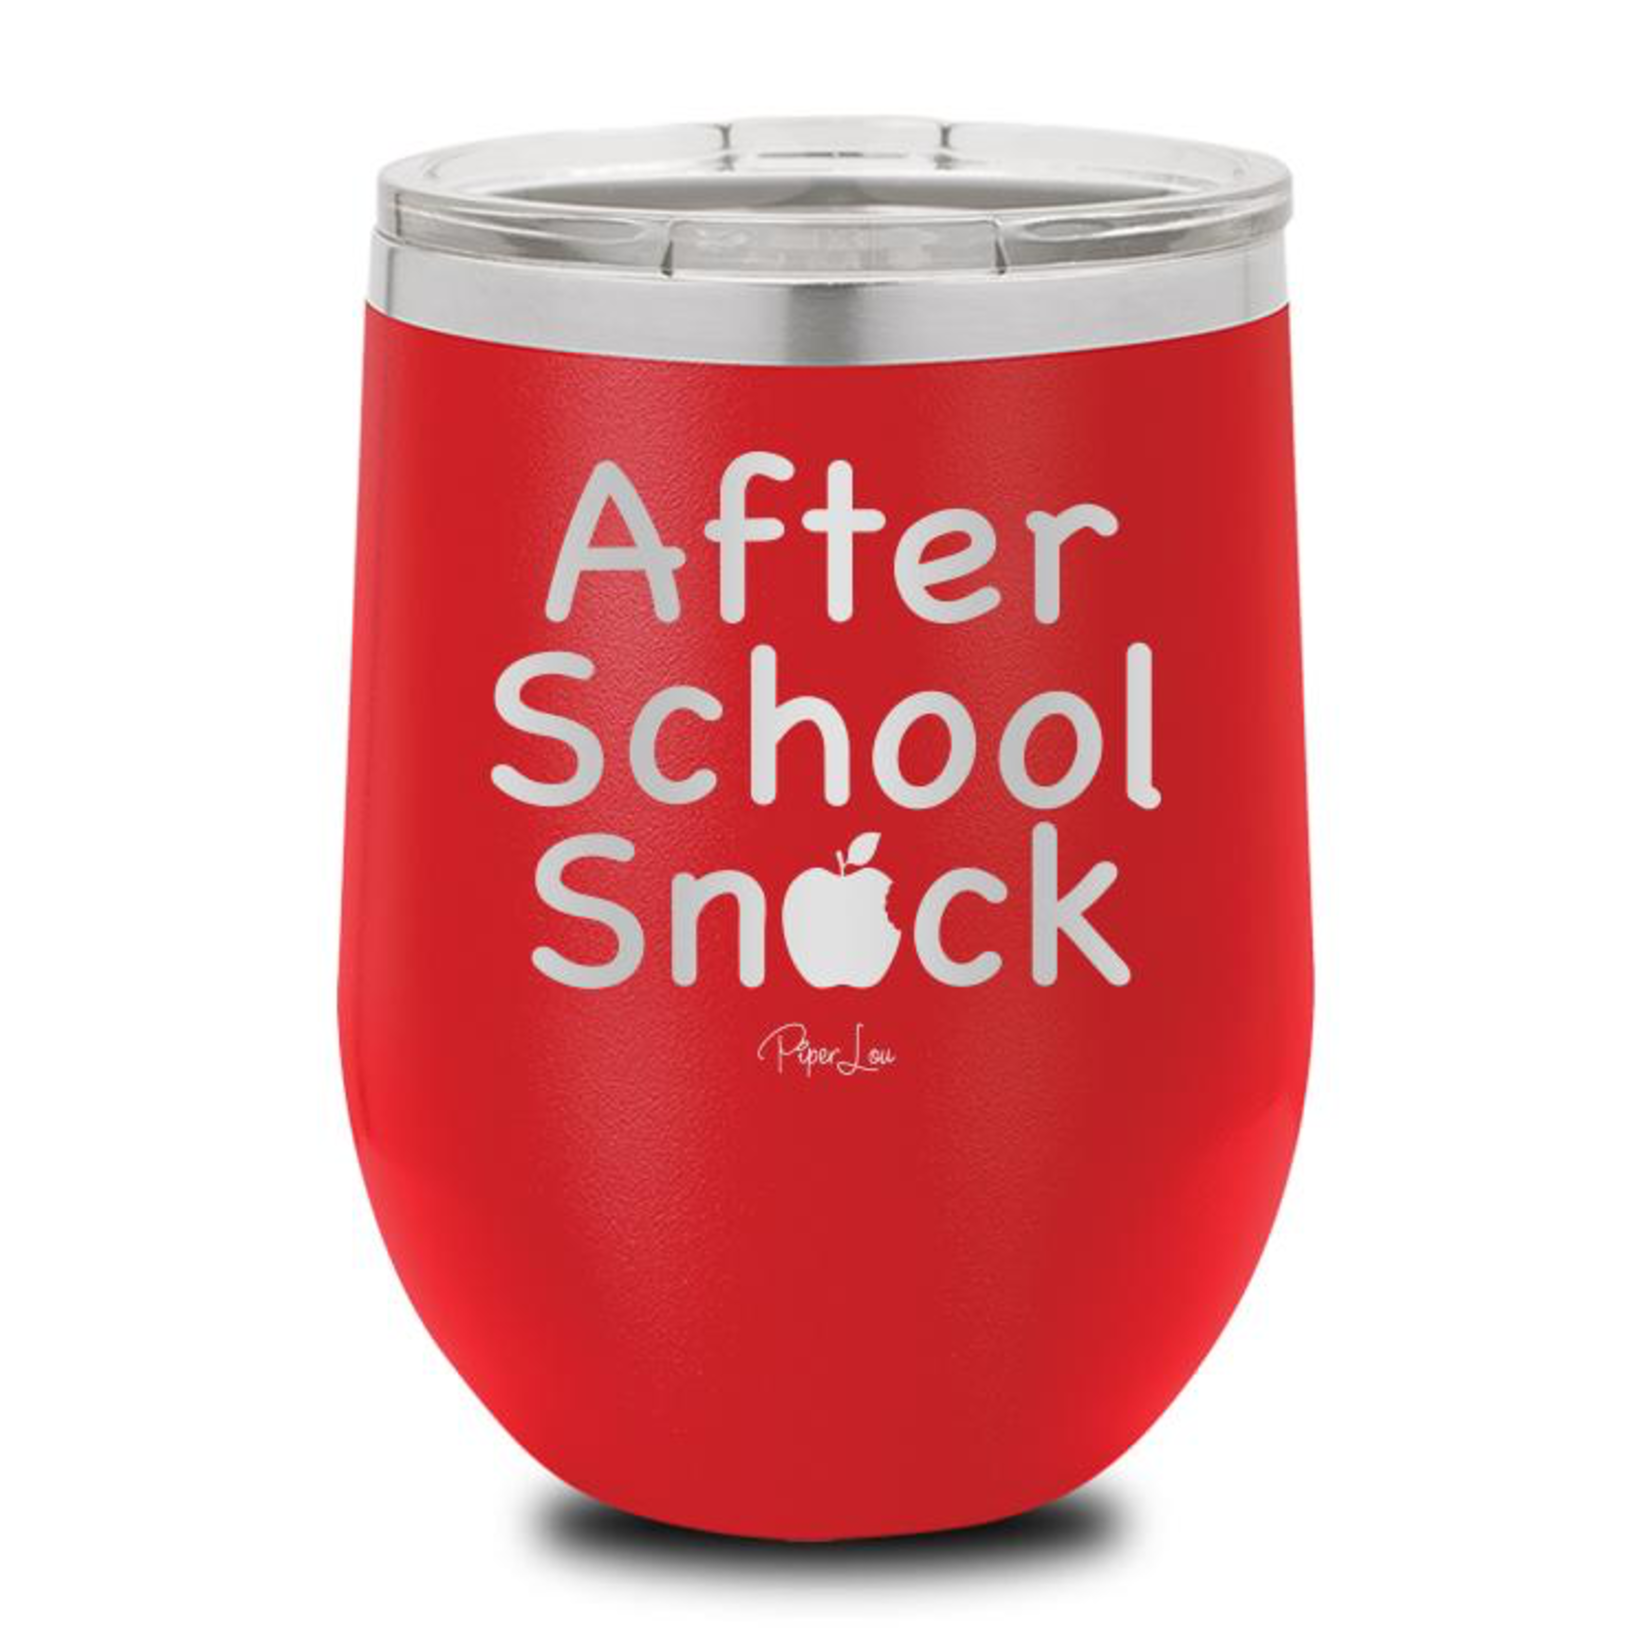 Piper Lou After School Snack Wine Cup, sale item, Was $29.99